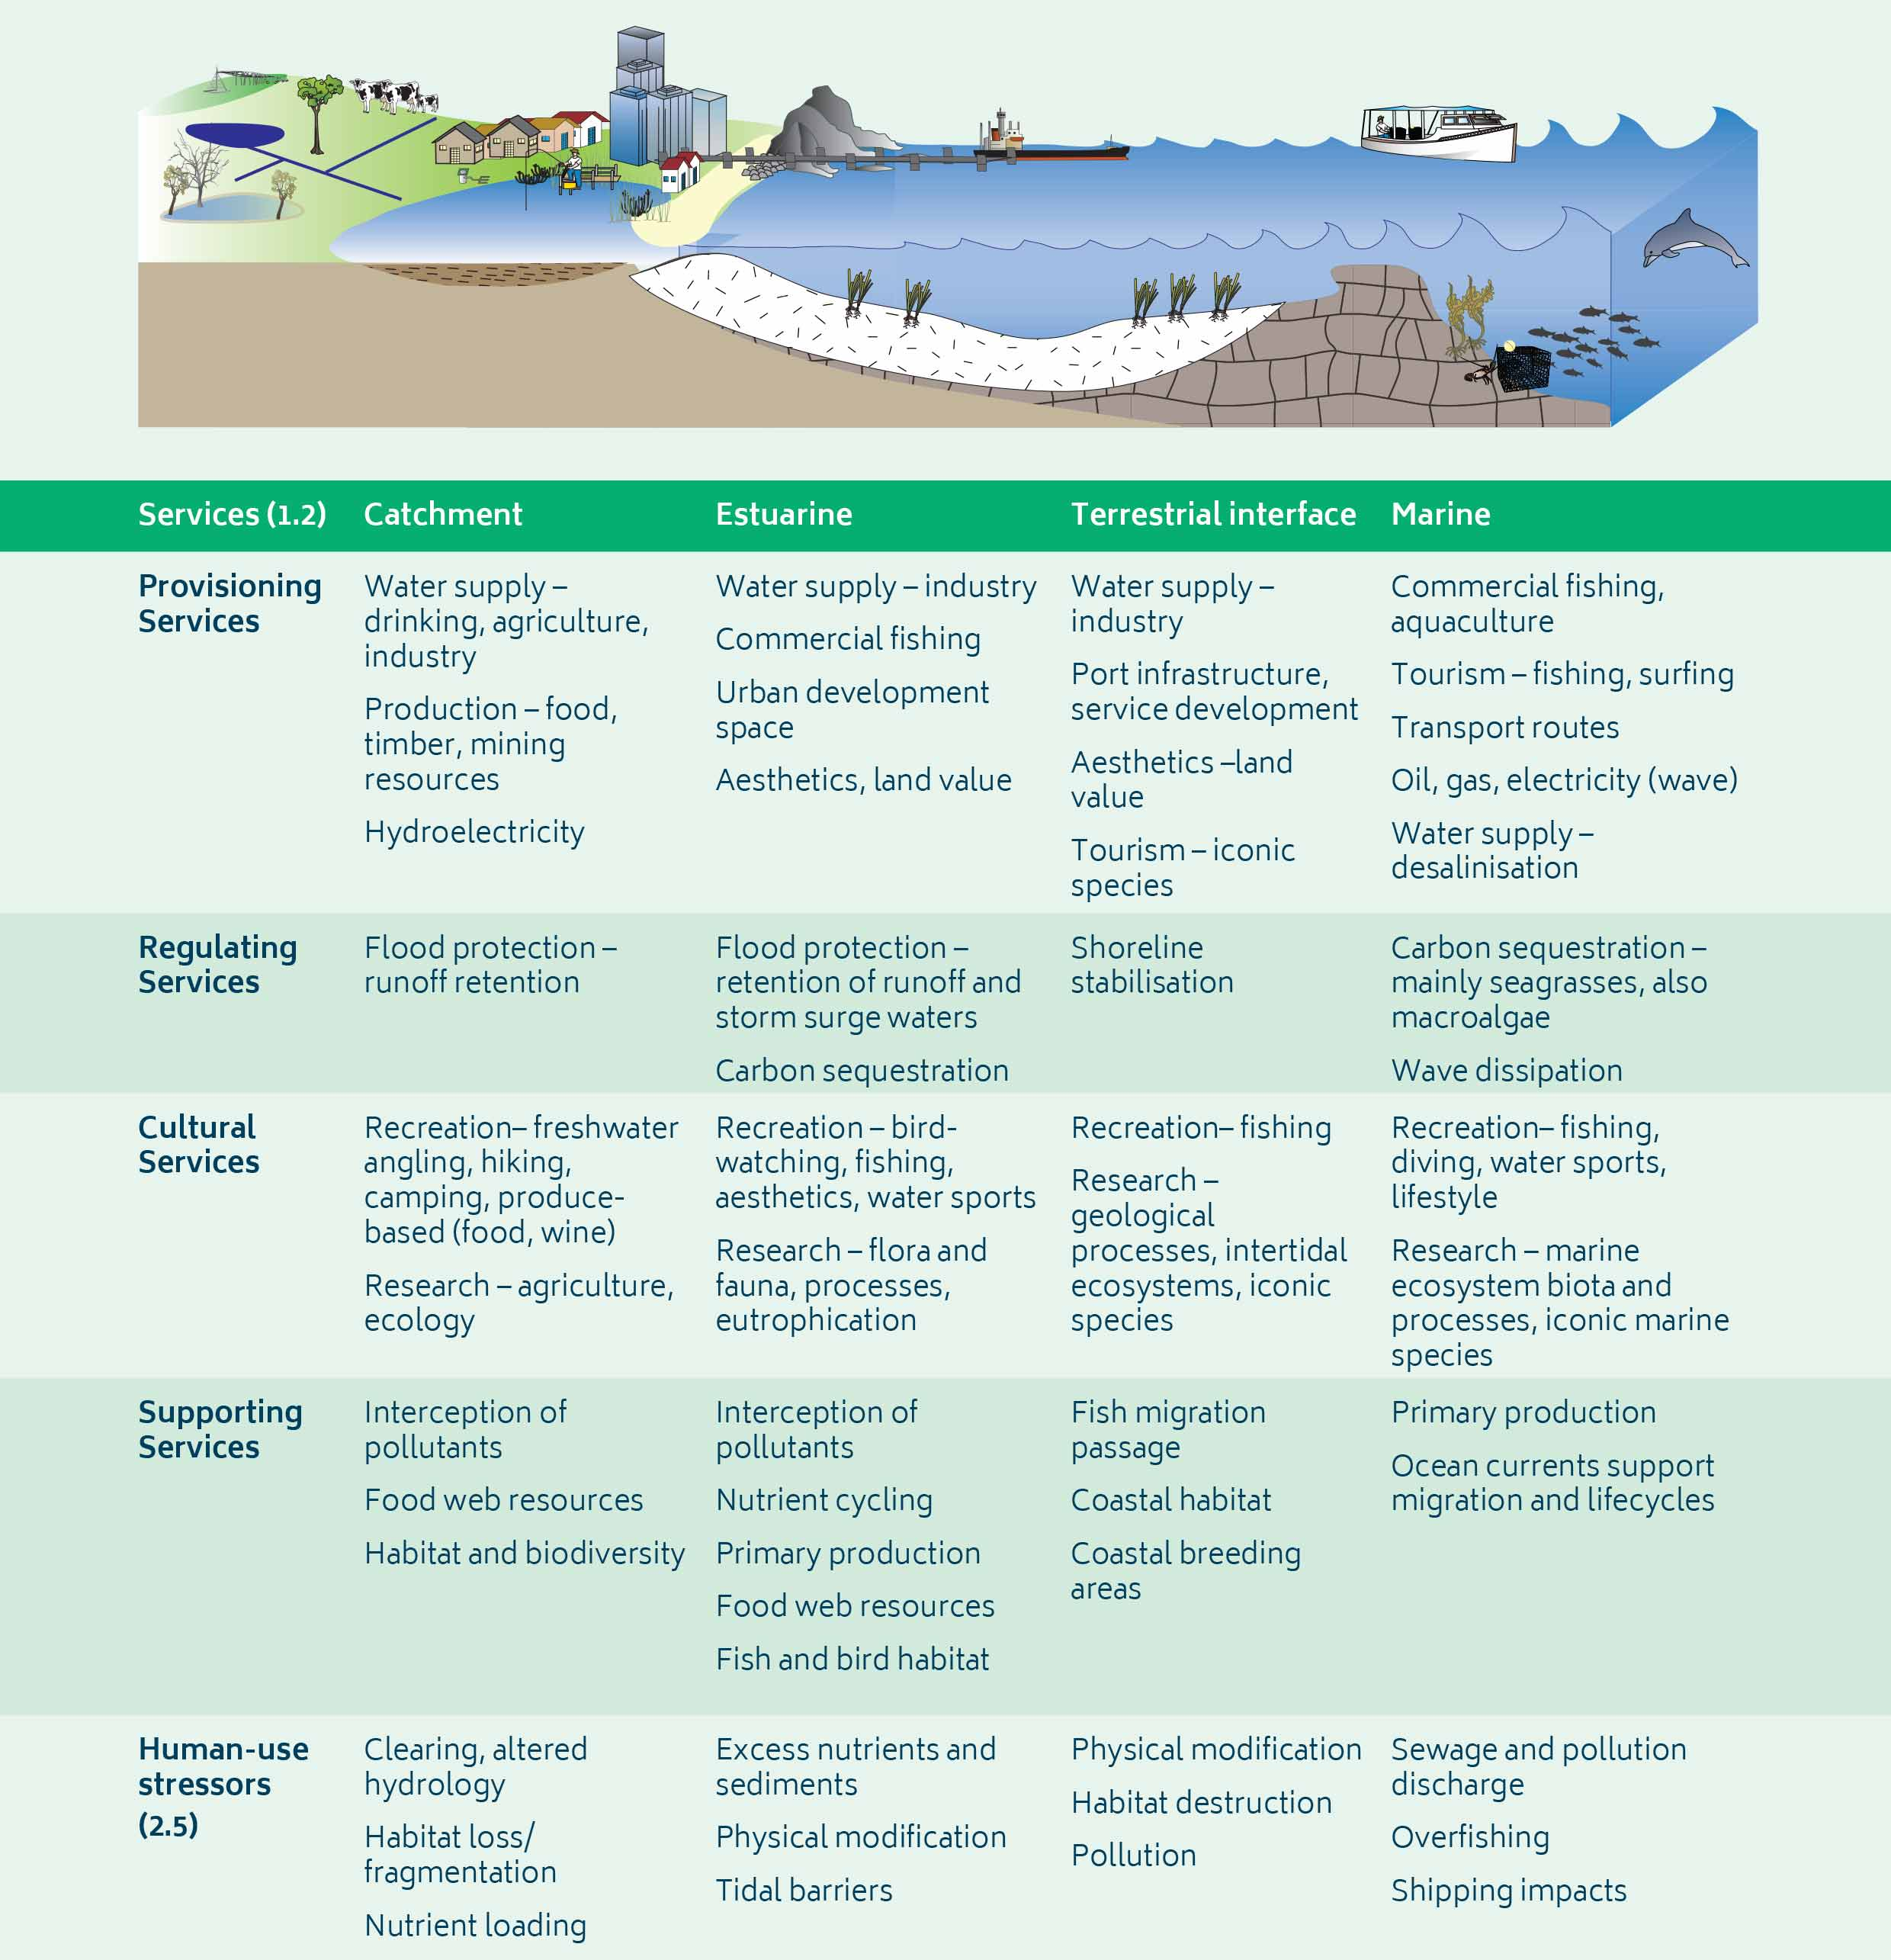 Understanding the functions, processes and services provided by or in your system of interest helps when determining climate change impacts and appropriate responses to them.